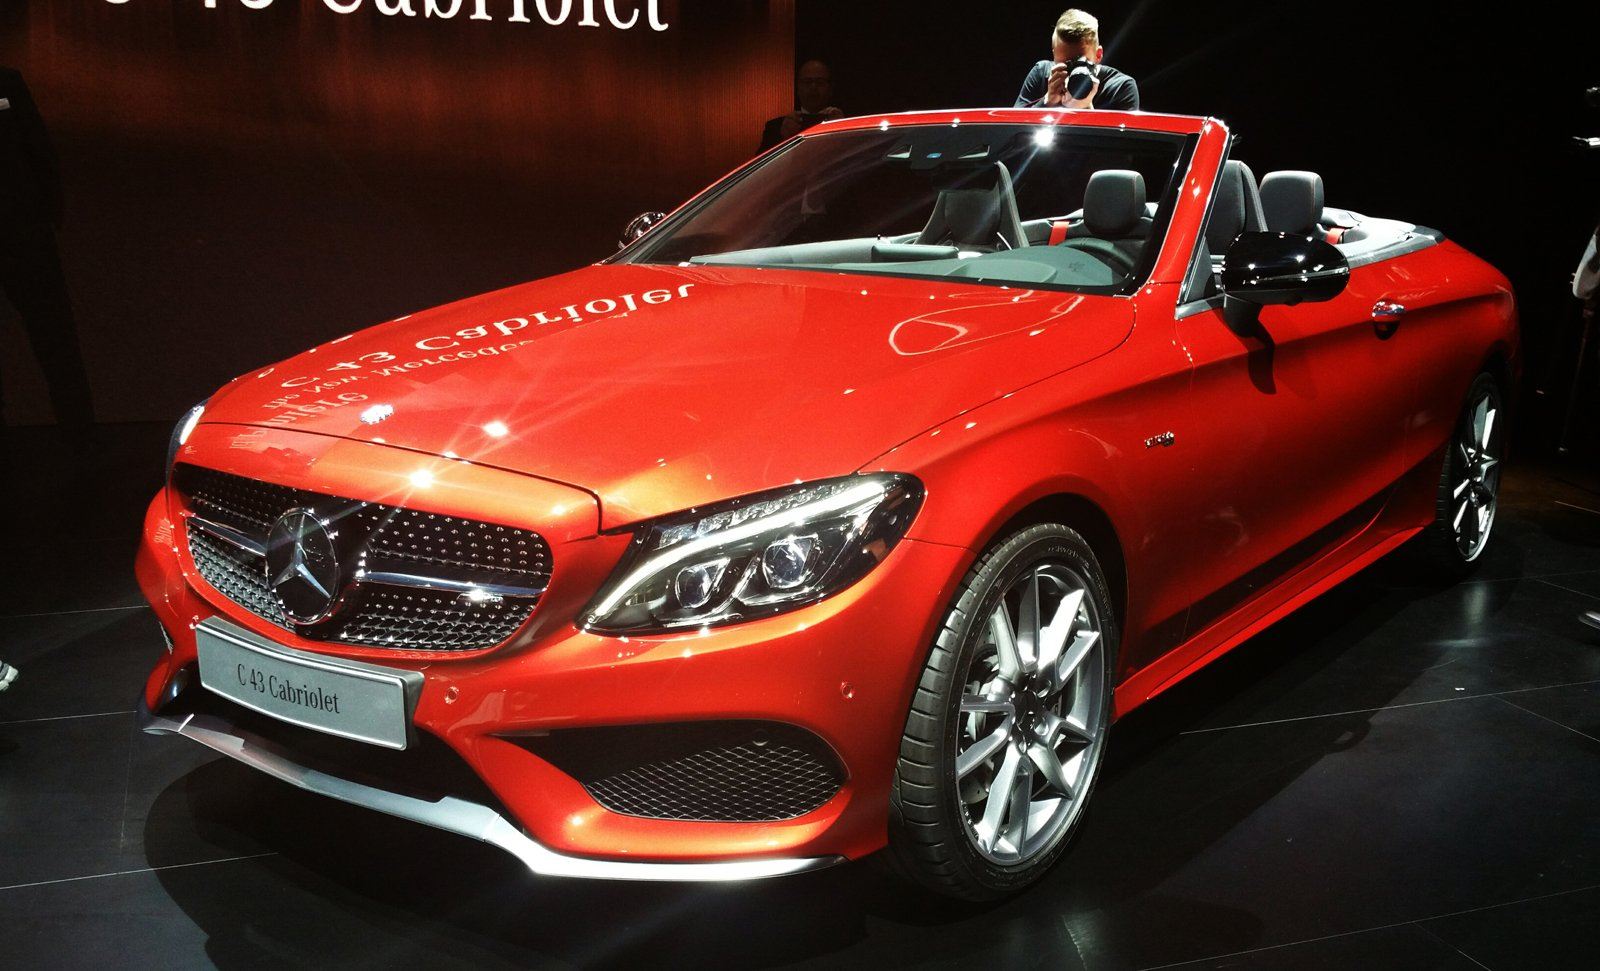 2017 mercedes benz c class cabriolet makes global debut. Black Bedroom Furniture Sets. Home Design Ideas